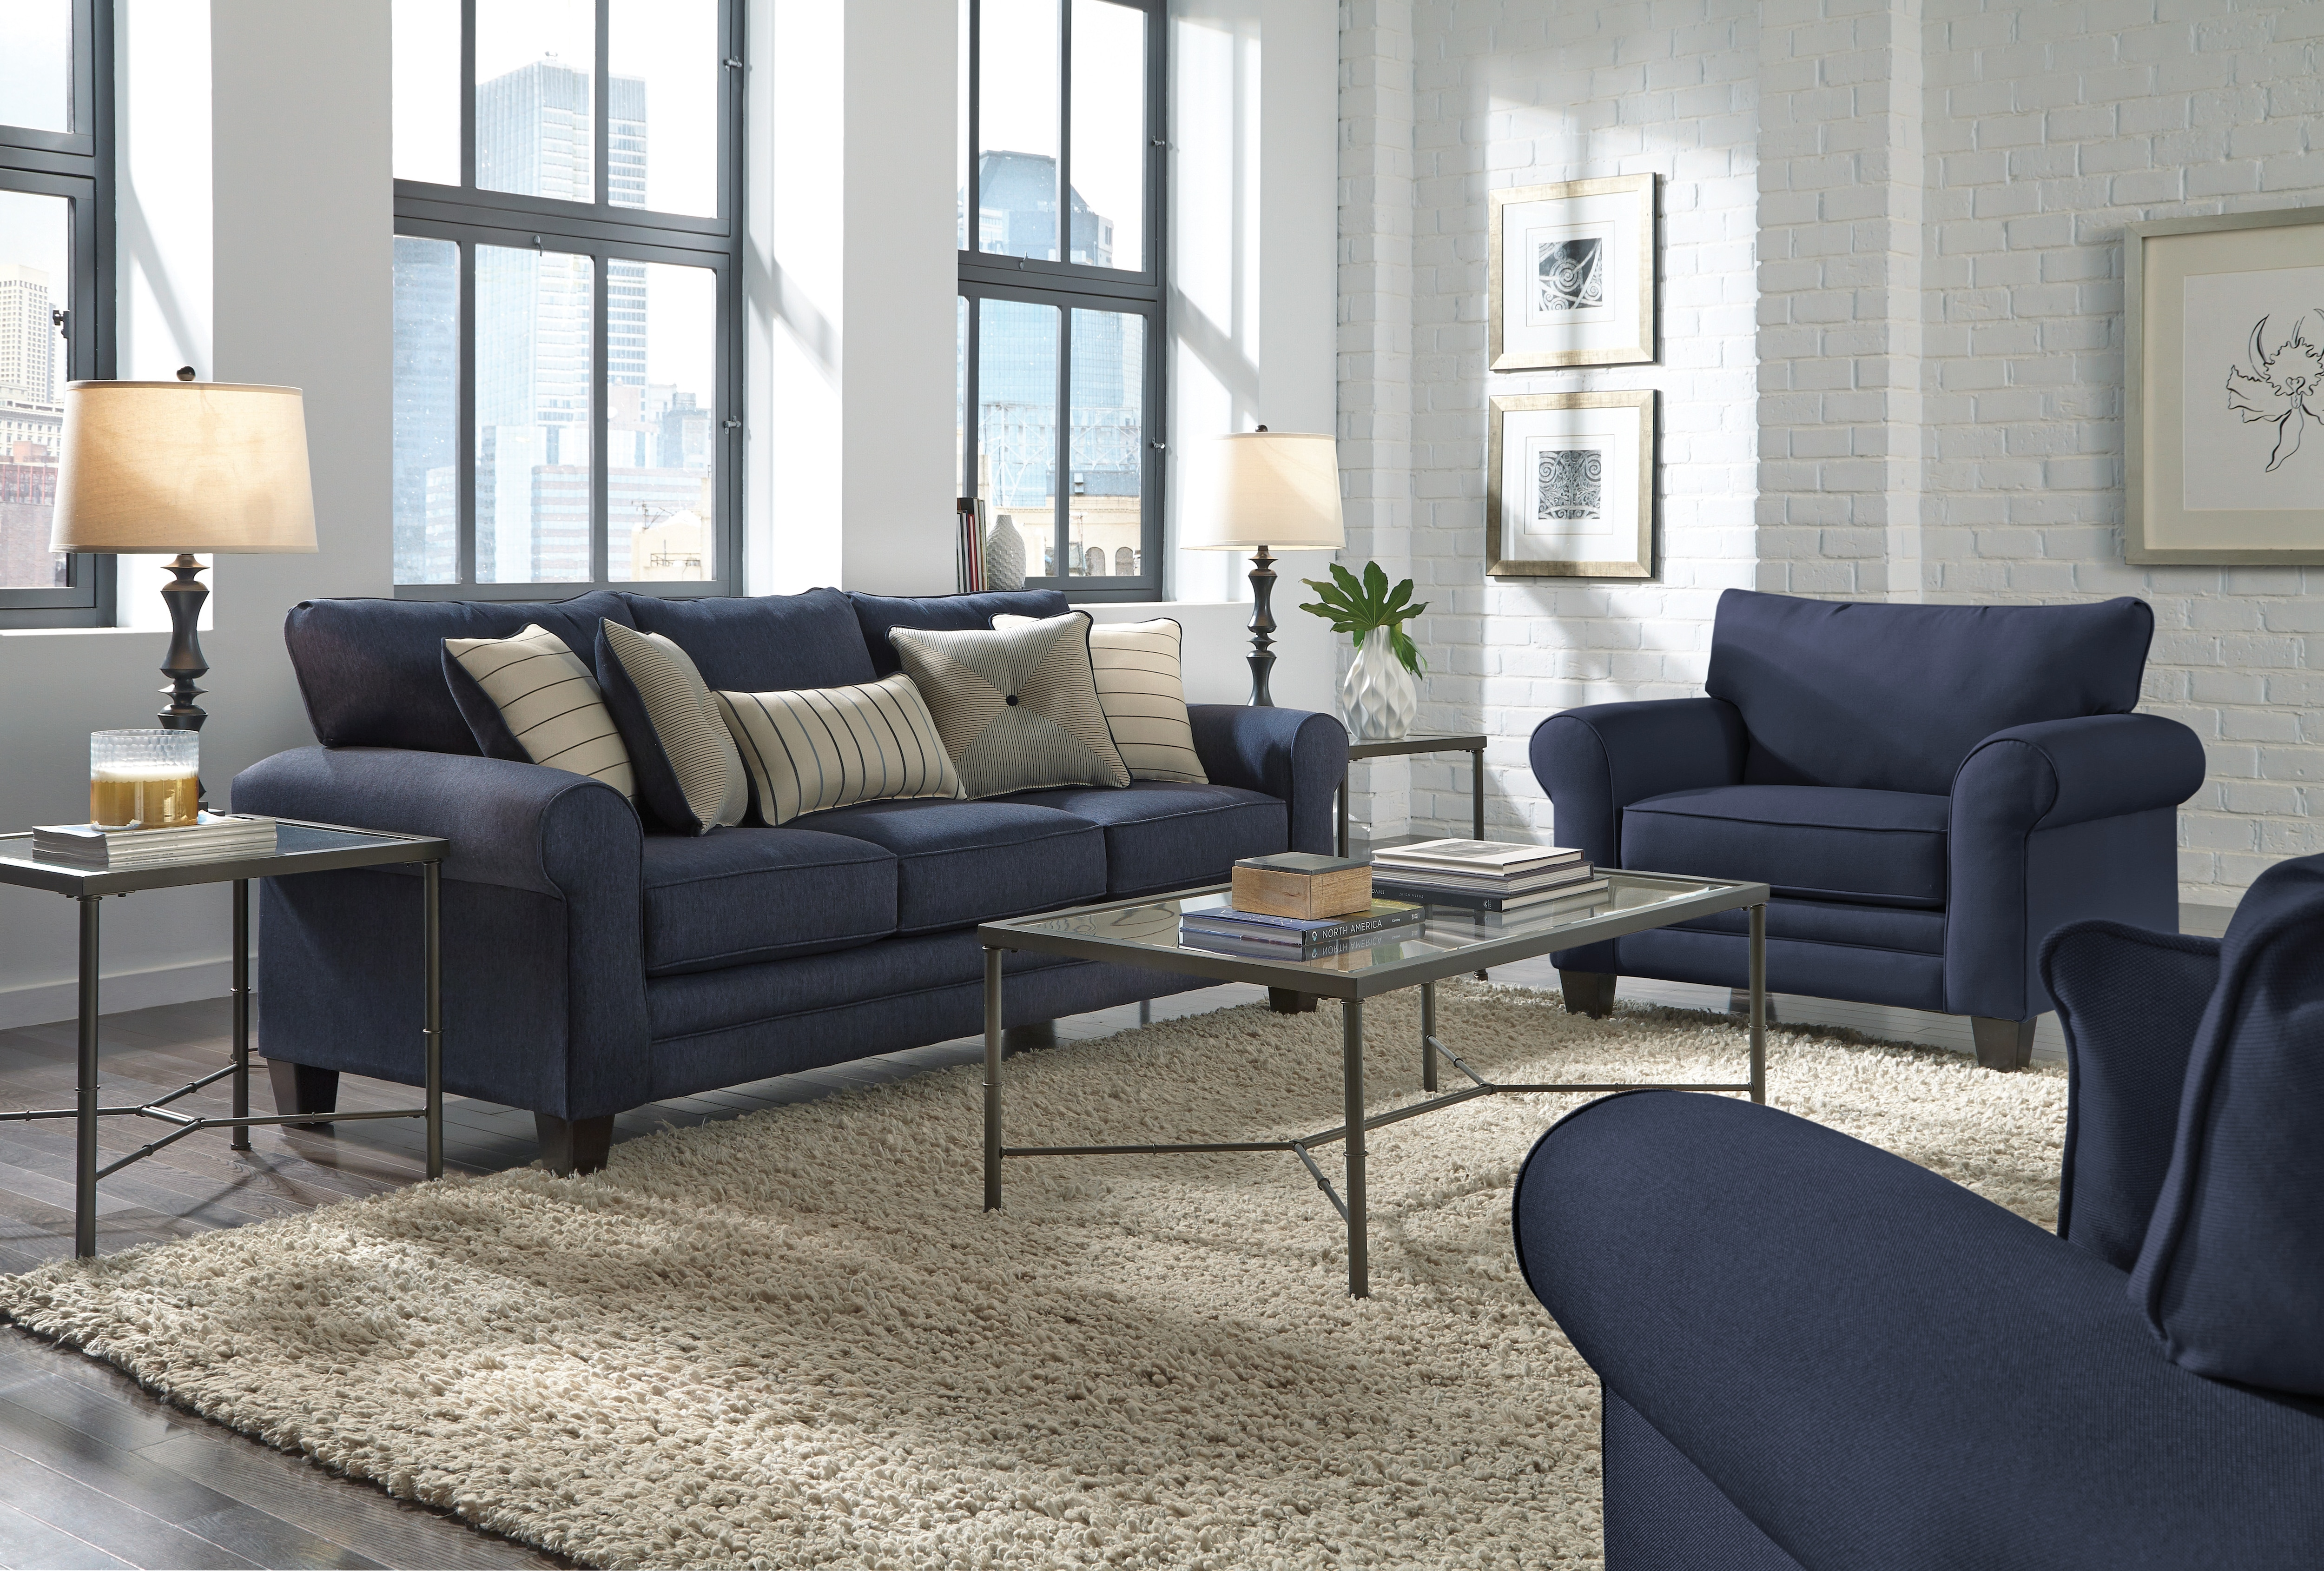 Aspire Sofa - Navy